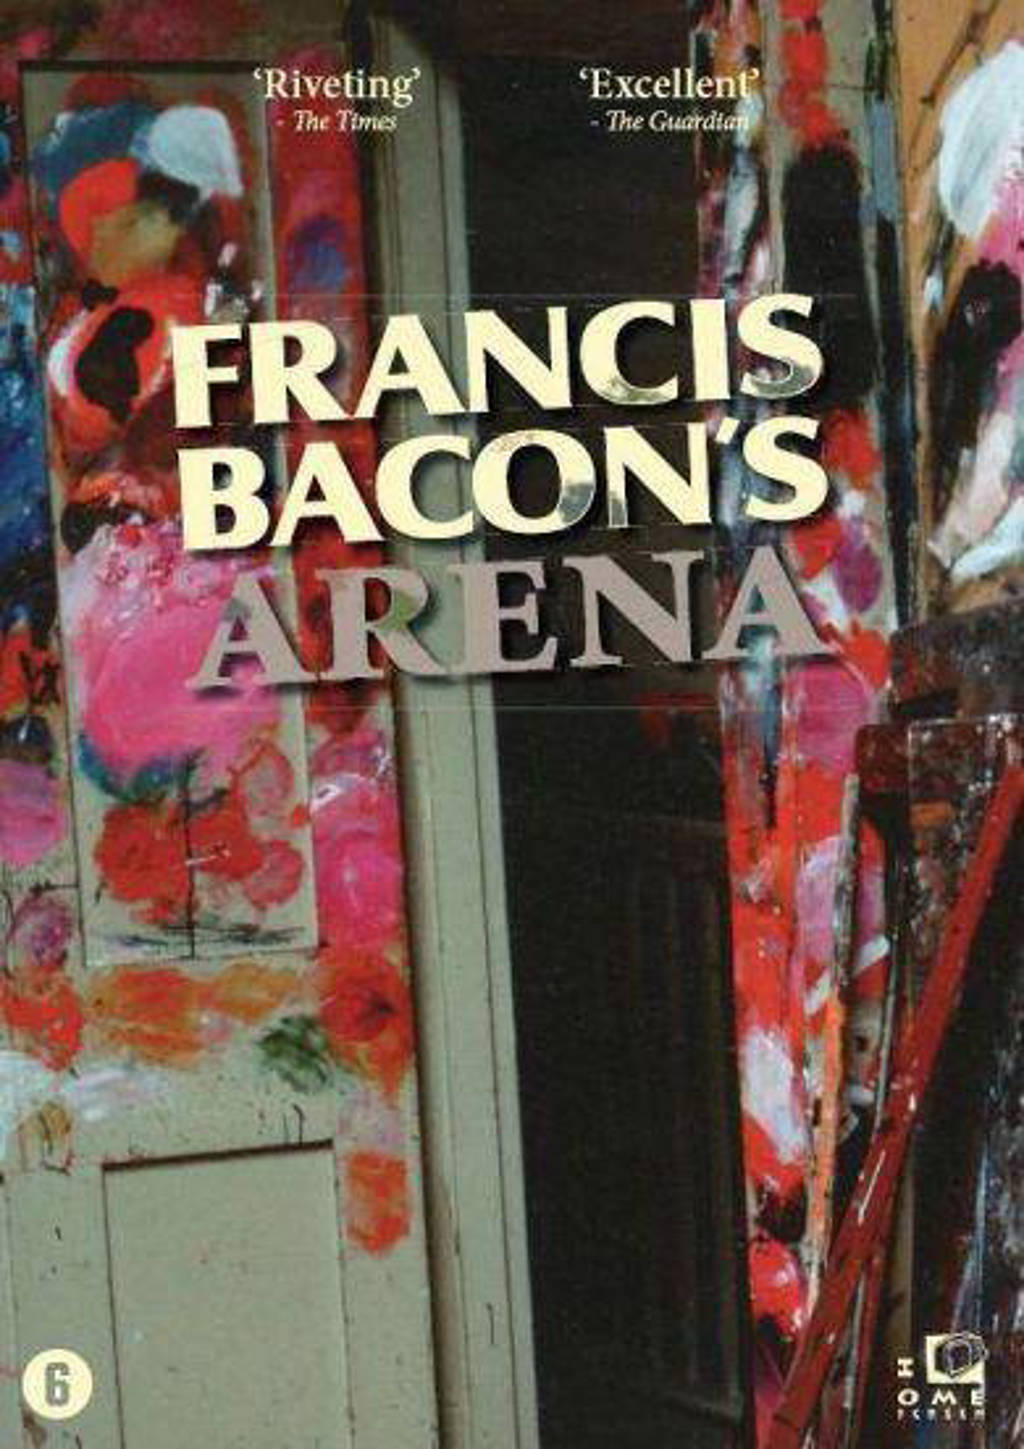 Francis Bacon's arena (DVD)